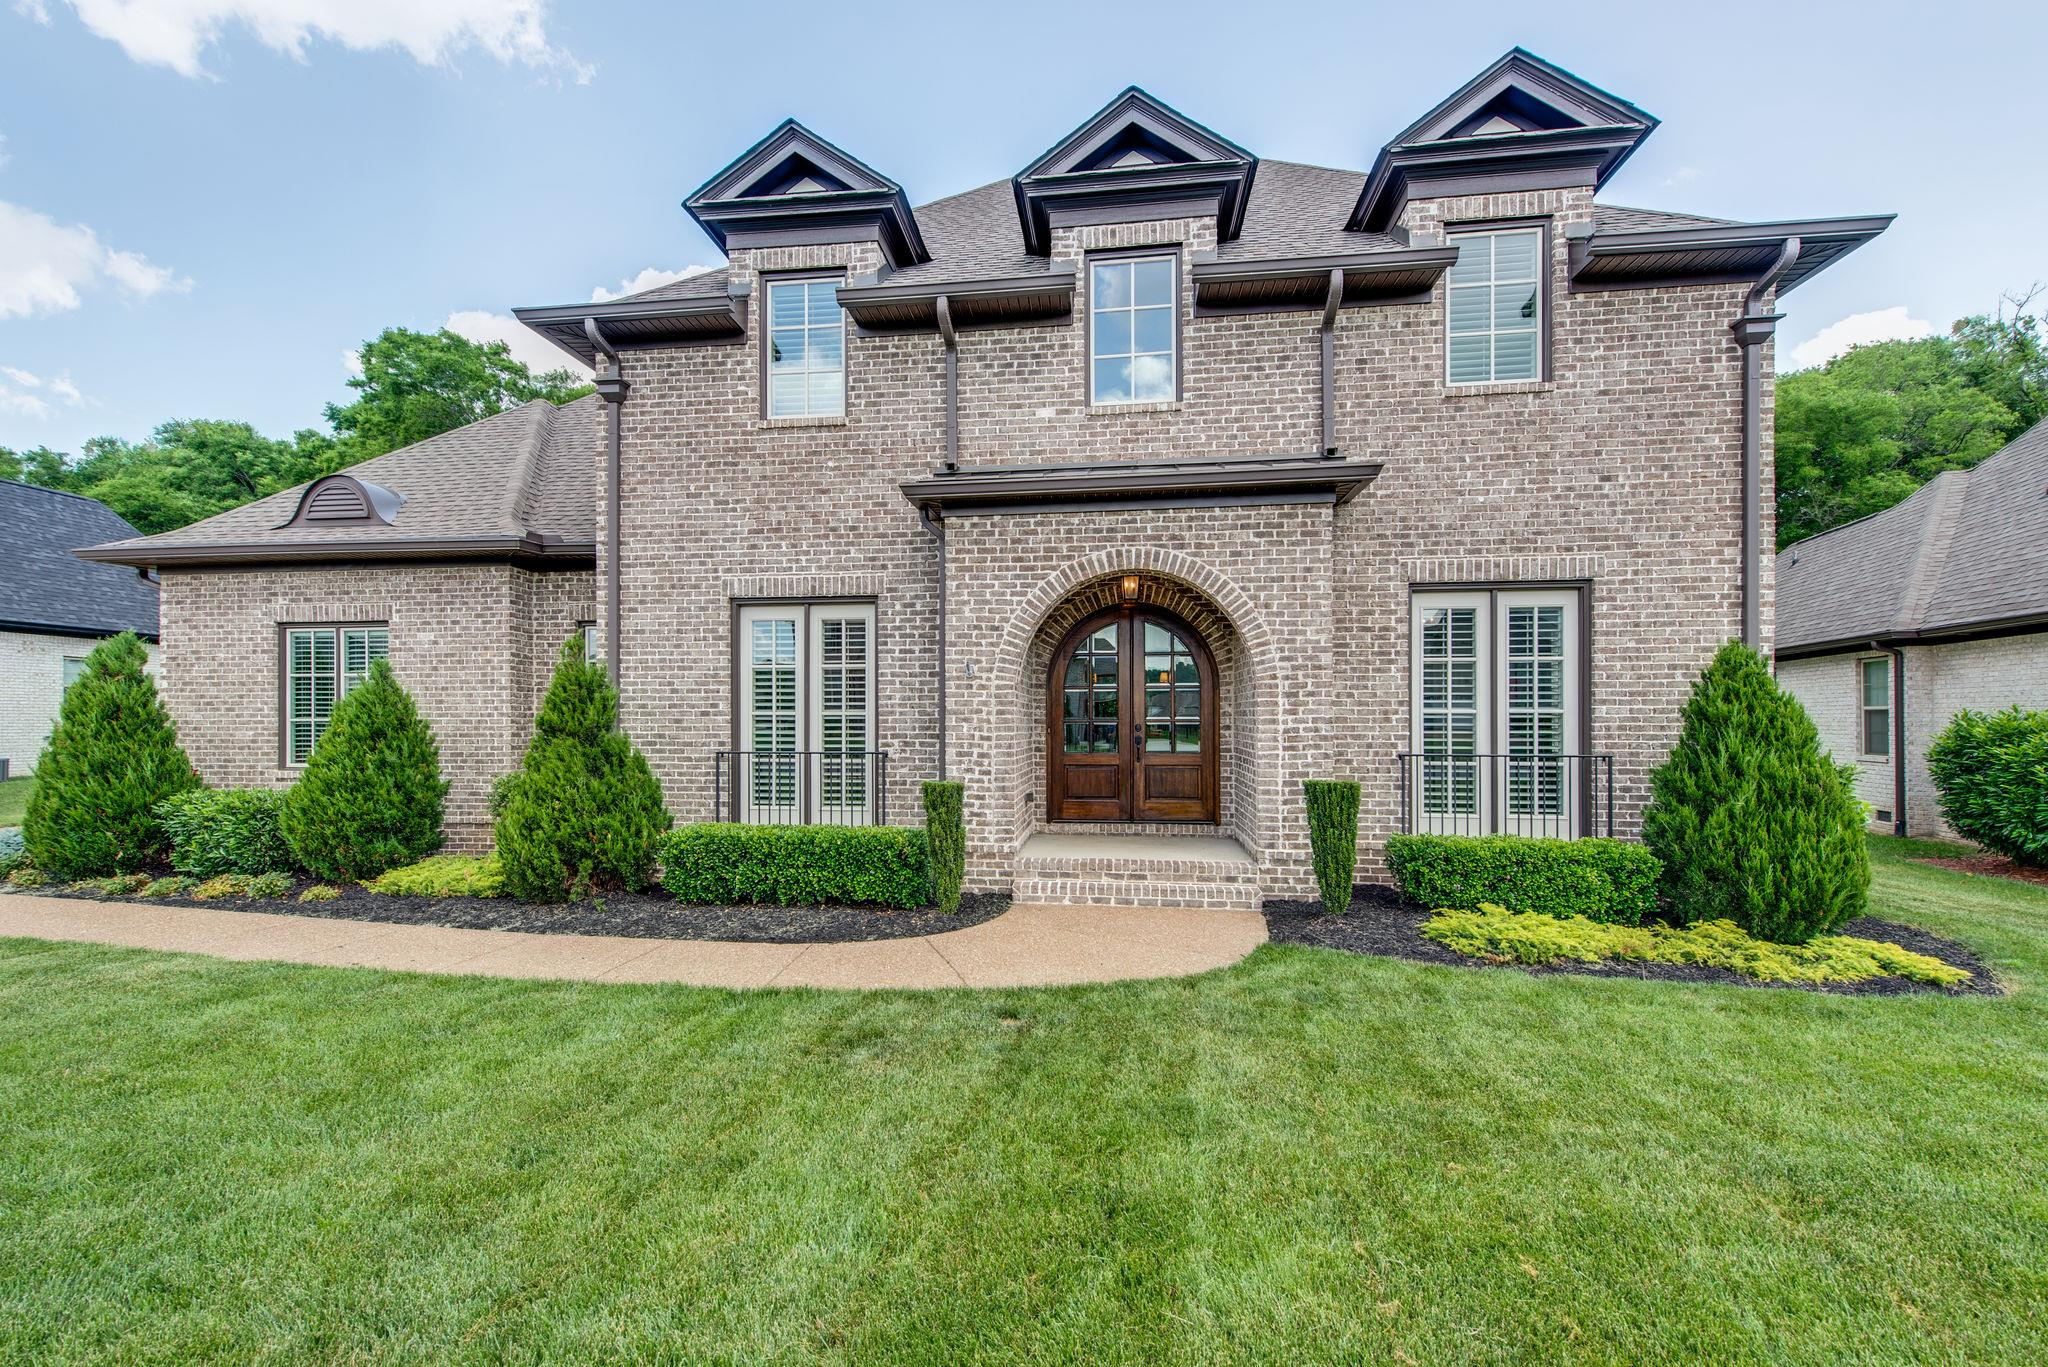 4006 Haversack Dr, Spring Hill, TN 37174 - Spring Hill, TN real estate listing